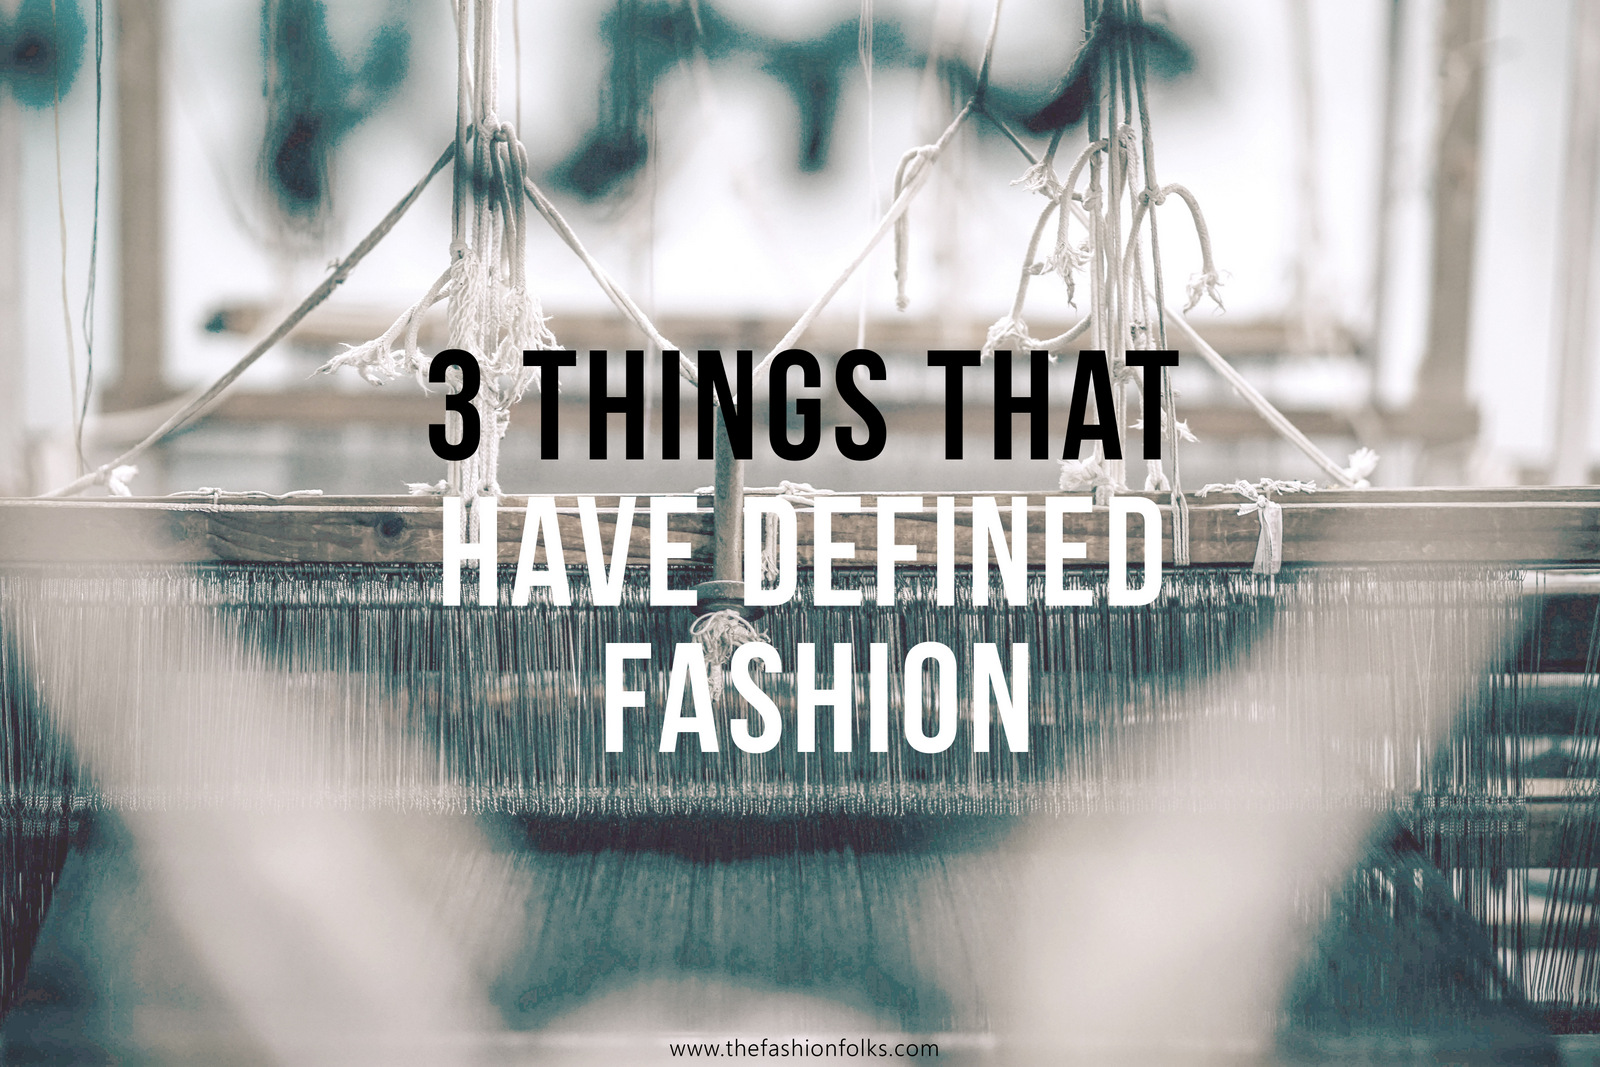 Three Things That Have Defined Fashion